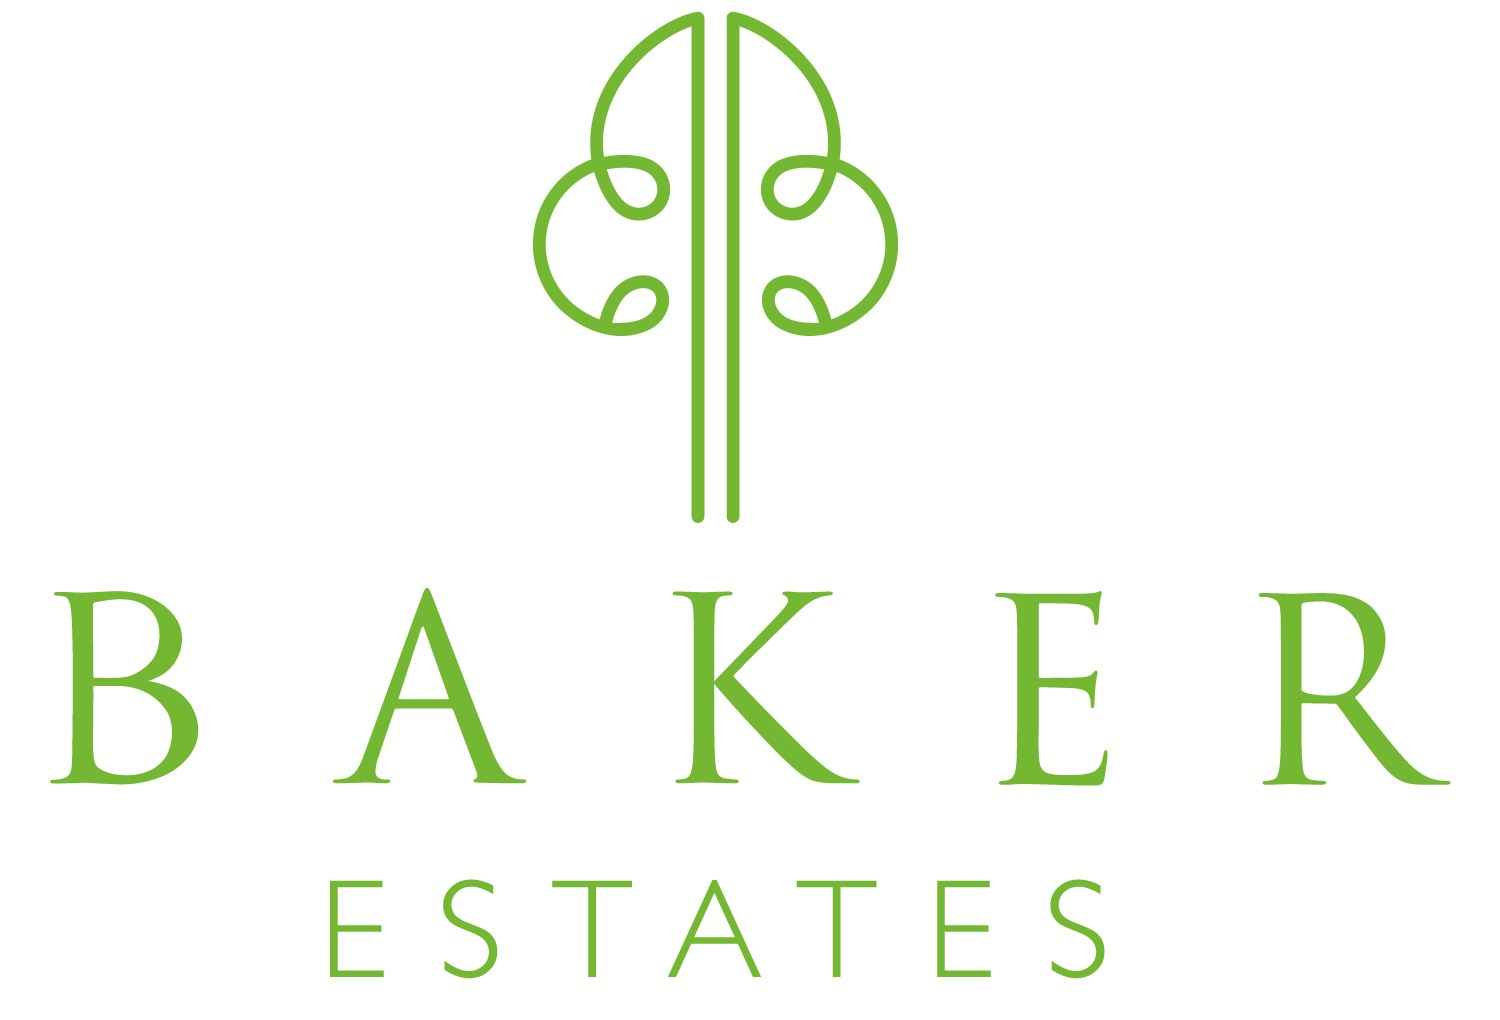 Latest Baker Estates update